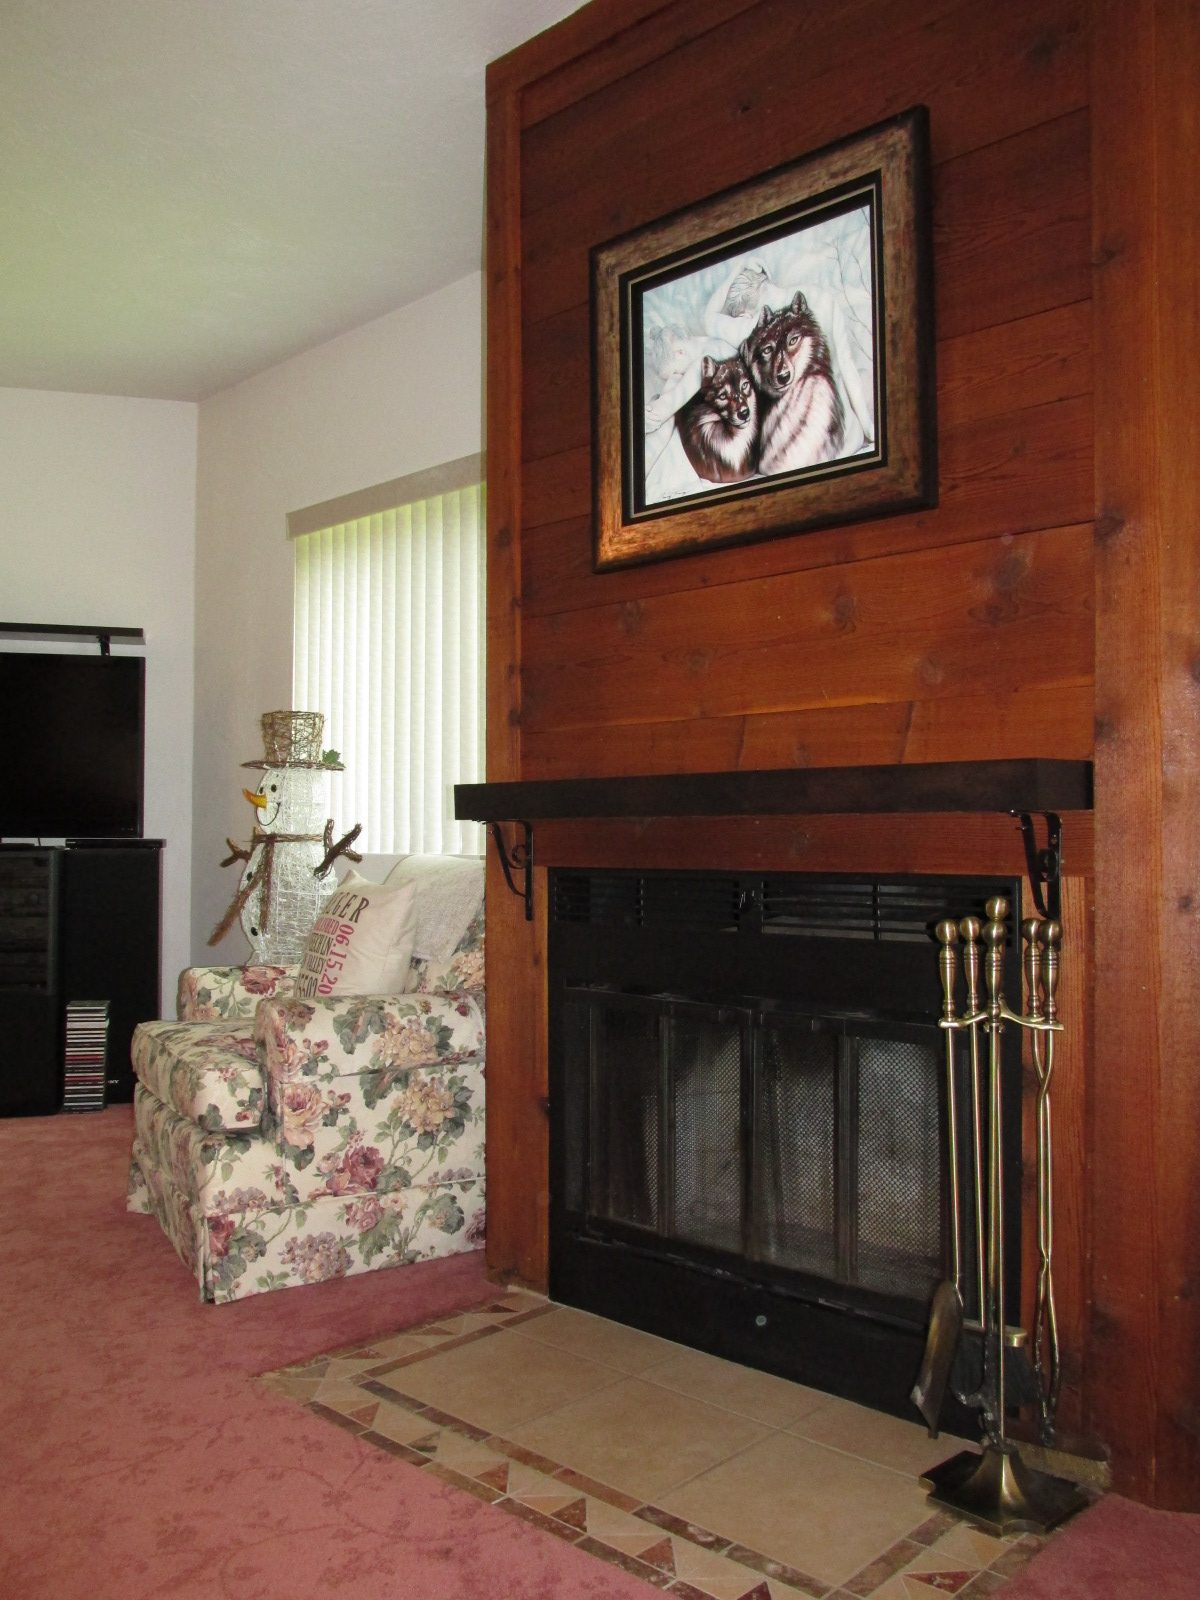 1116 veech lane hidden valley pa 15502 u2014 laurel highlands living